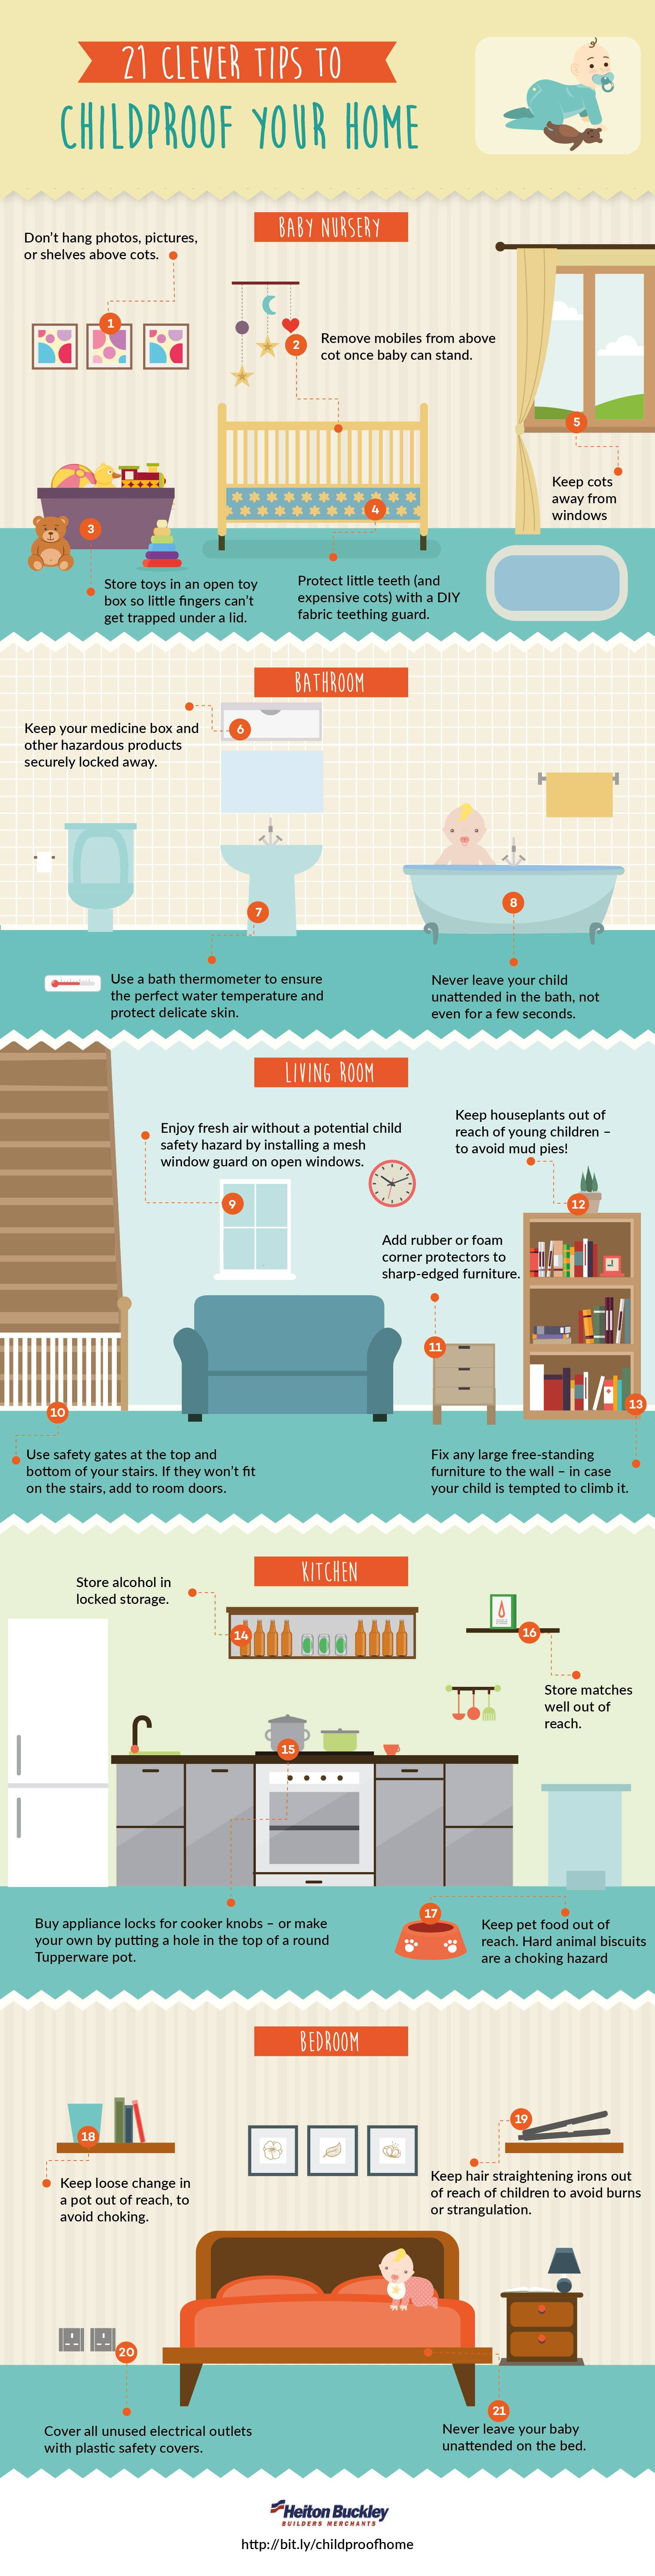 21 Clever Tips To Childproof Your Home